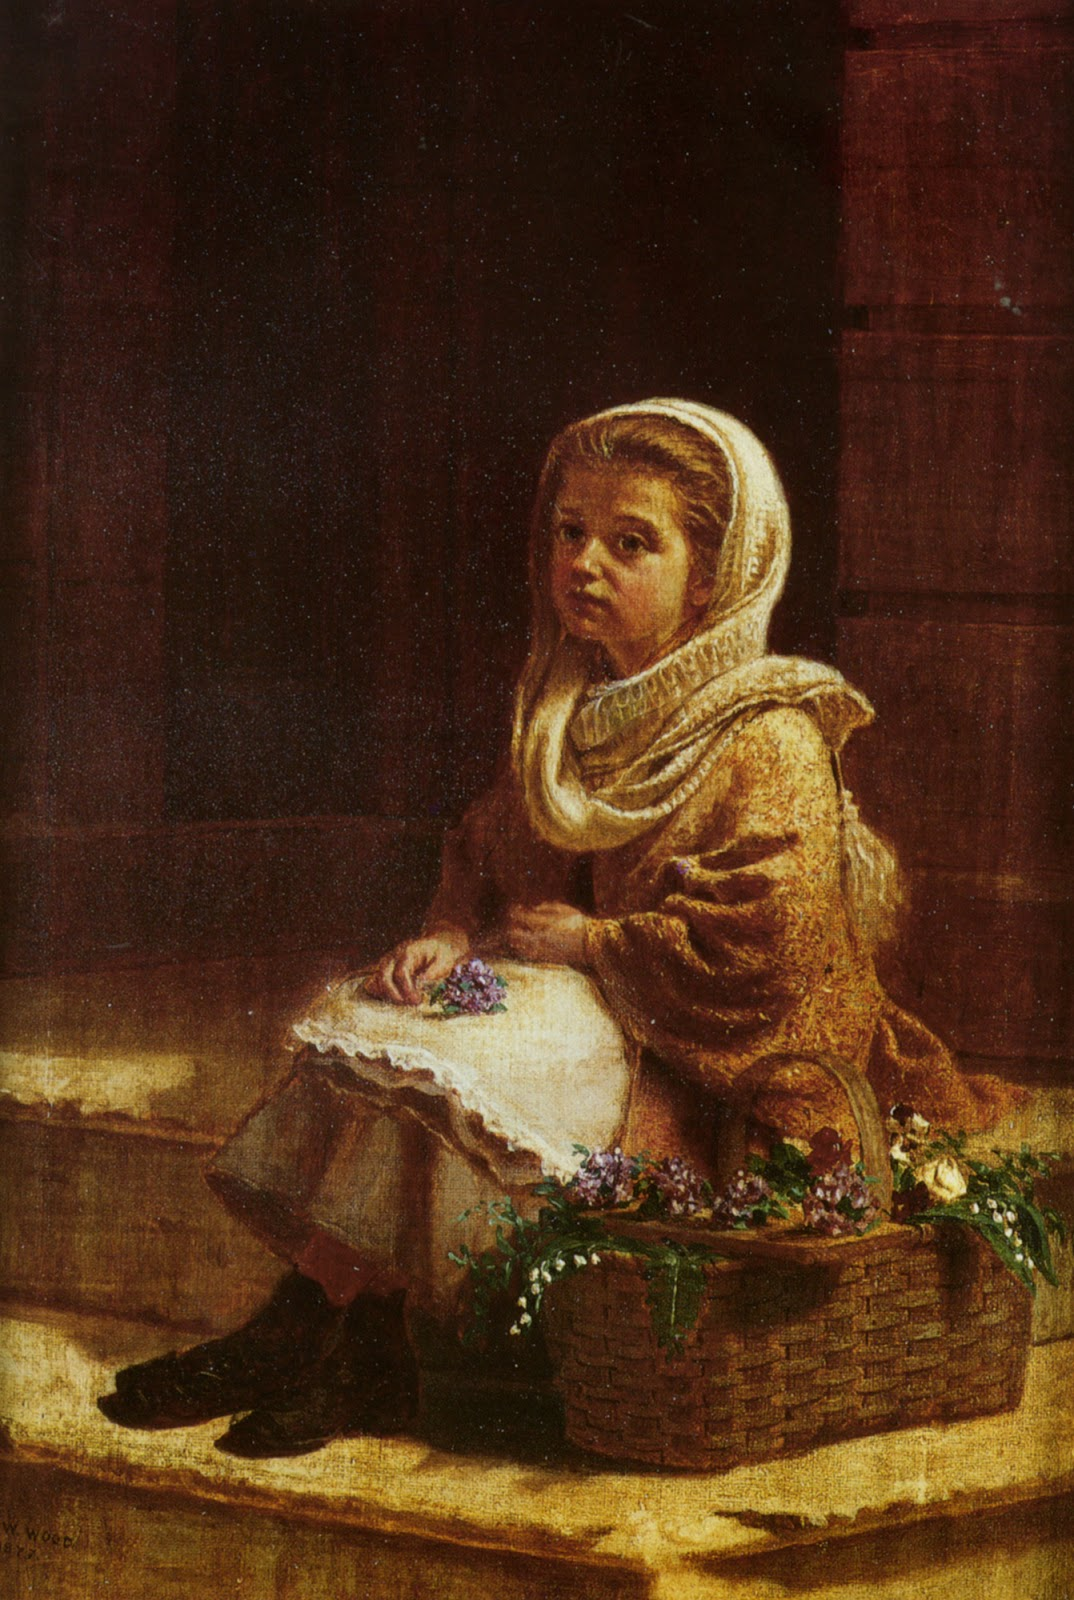 Frank Holl: Victorian painter is Emerging from the Shadows ...  Victorian Painting Portrait Artists